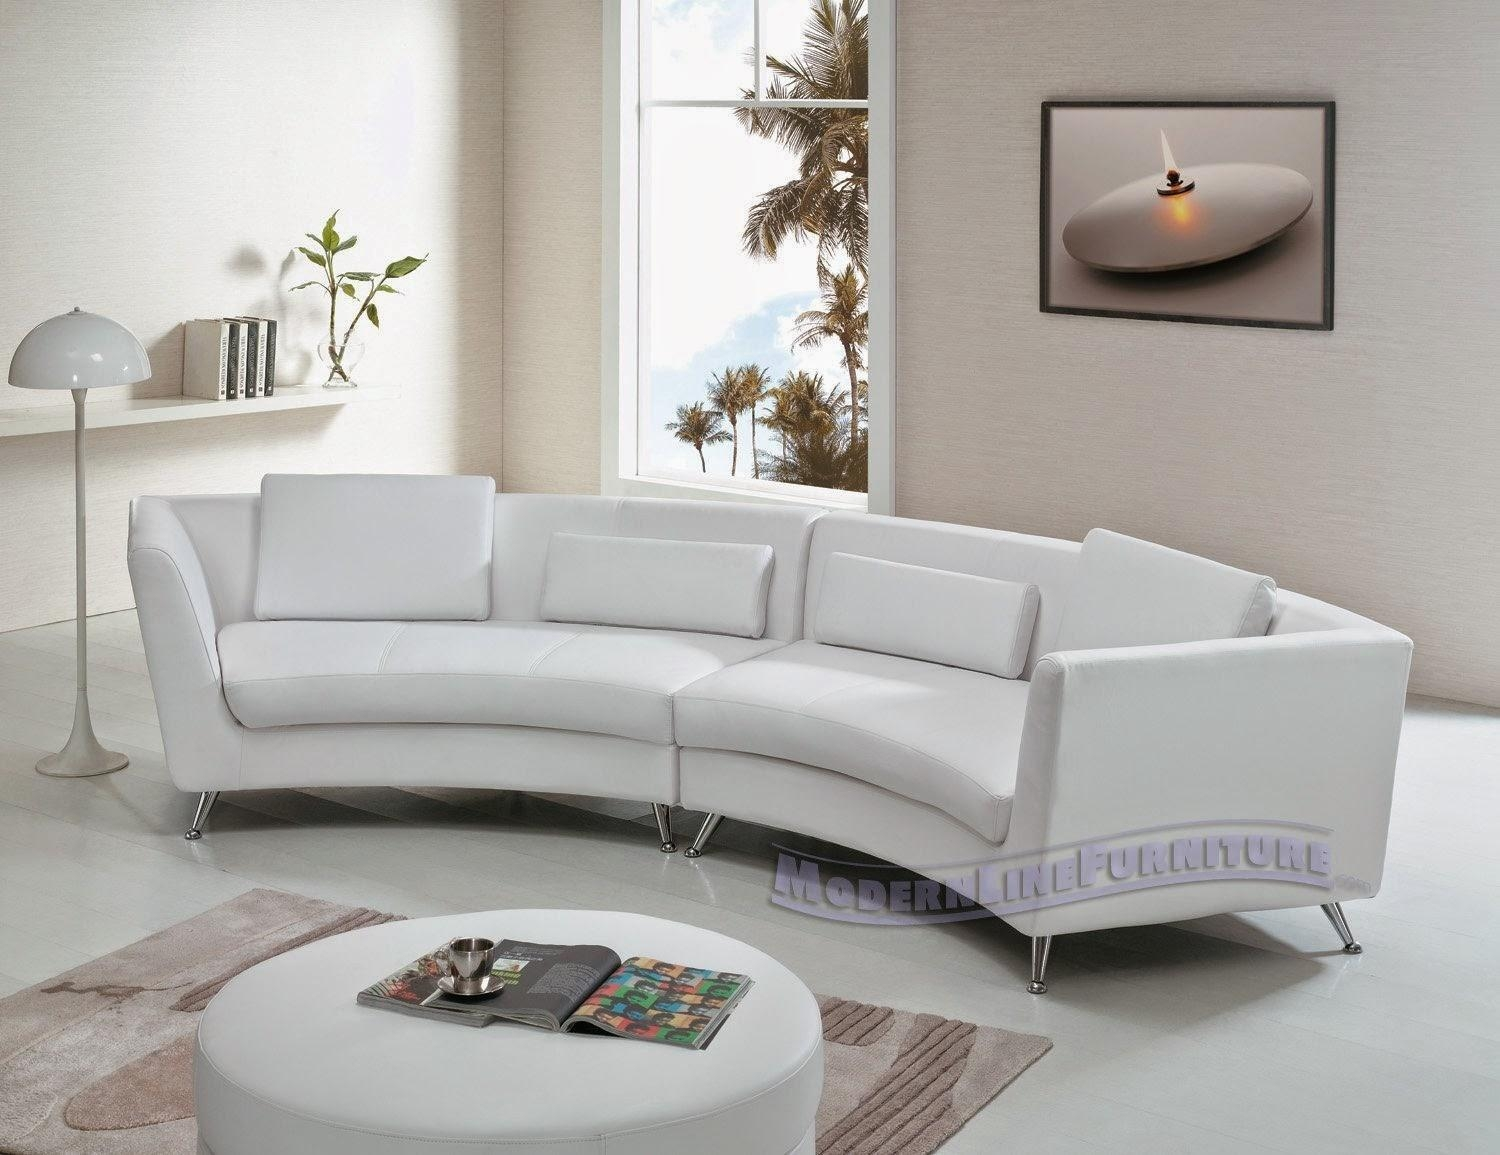 Sofa Curved: Curved Sofa For Bay Window Pertaining To Bay Window Sofas (Image 14 of 20)